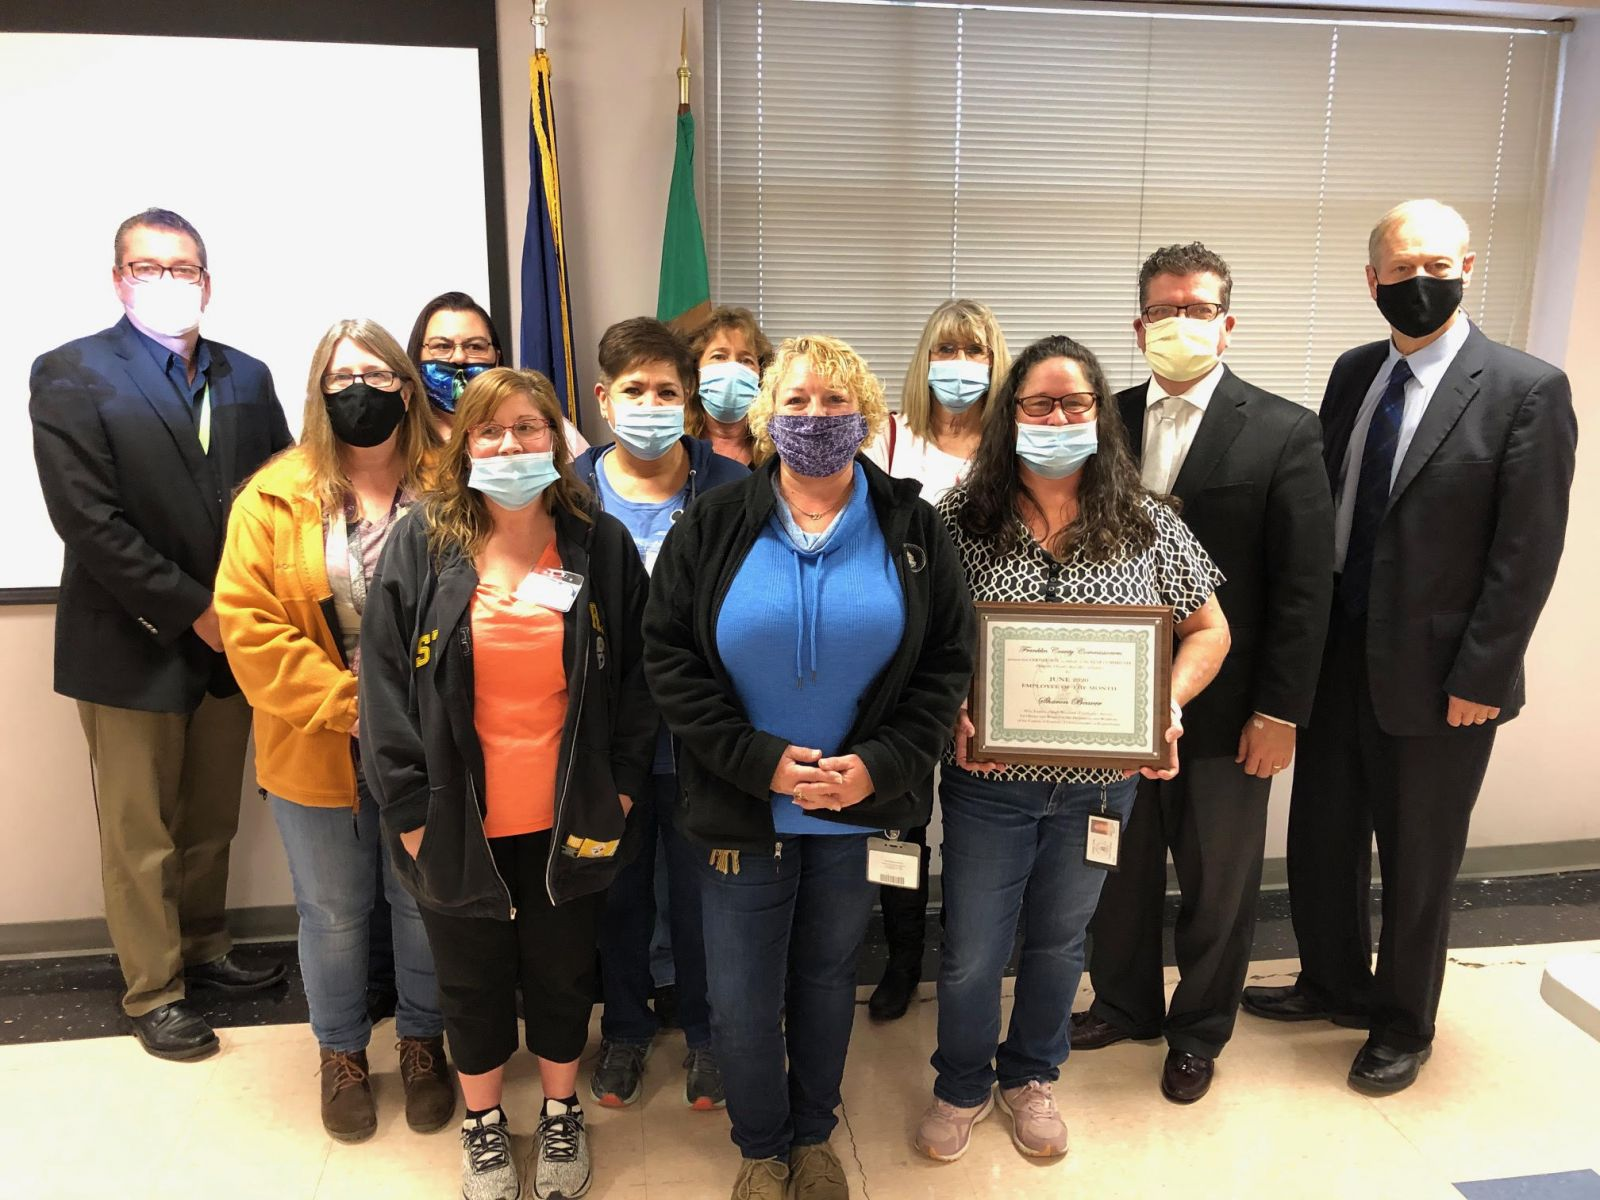 The Commissioners are pictured with the Custodial Services Team. Shown above (left to right)- Front Row: Stacey Jones, Heather Fleming, Director of Custodial Services Sharon Beaver; Second Row: Tammy Stitely, Rachel Fischer; Back Row: Commissioner John Flannery, Dawn Erdenbrack, Bethany Neuder, Linda Cook, Commissioner Chairman Dave Keller and Commissioner Bob Ziobrowski